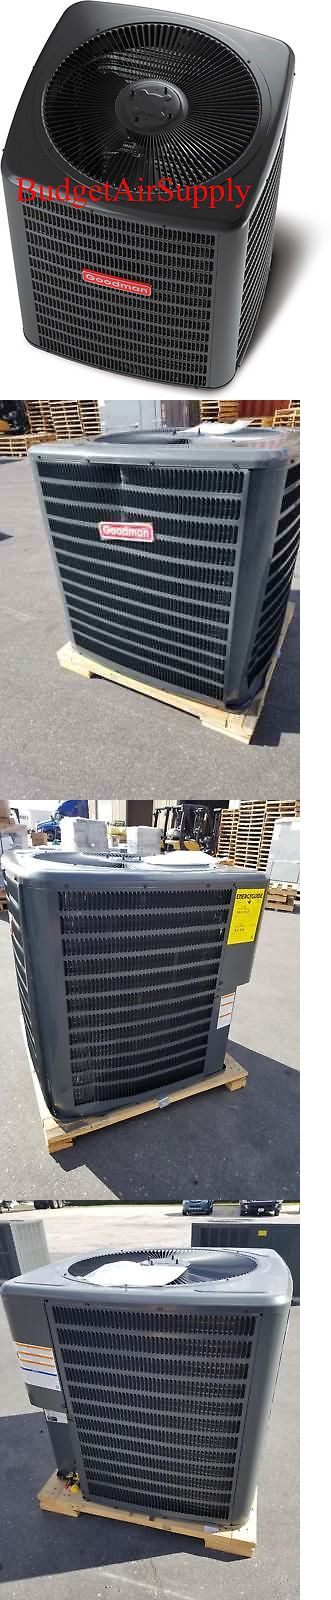 Central Air Conditioners 185108: Goodman 4 Ton 16 Seer Heat Pump